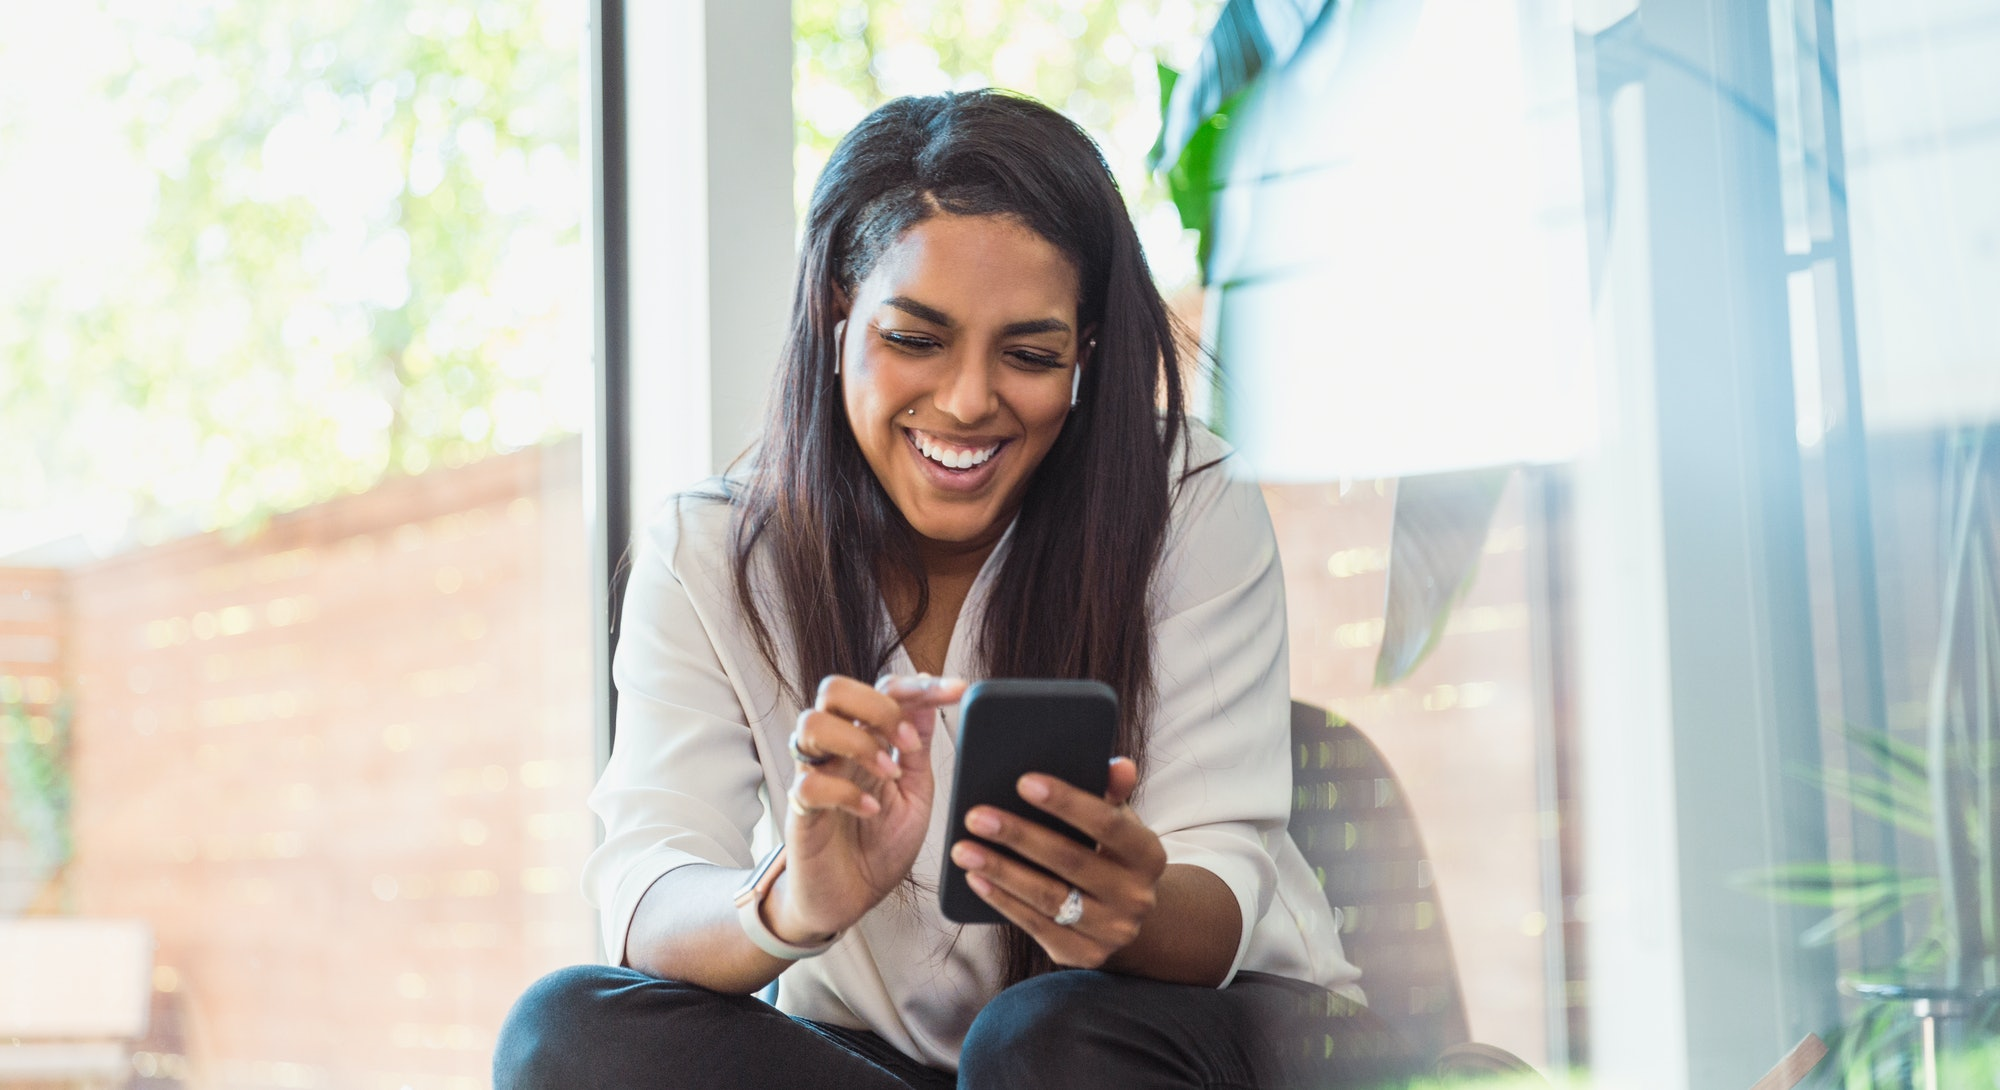 A woman looks at her phone laughing at Twitter's Super Follows feature.